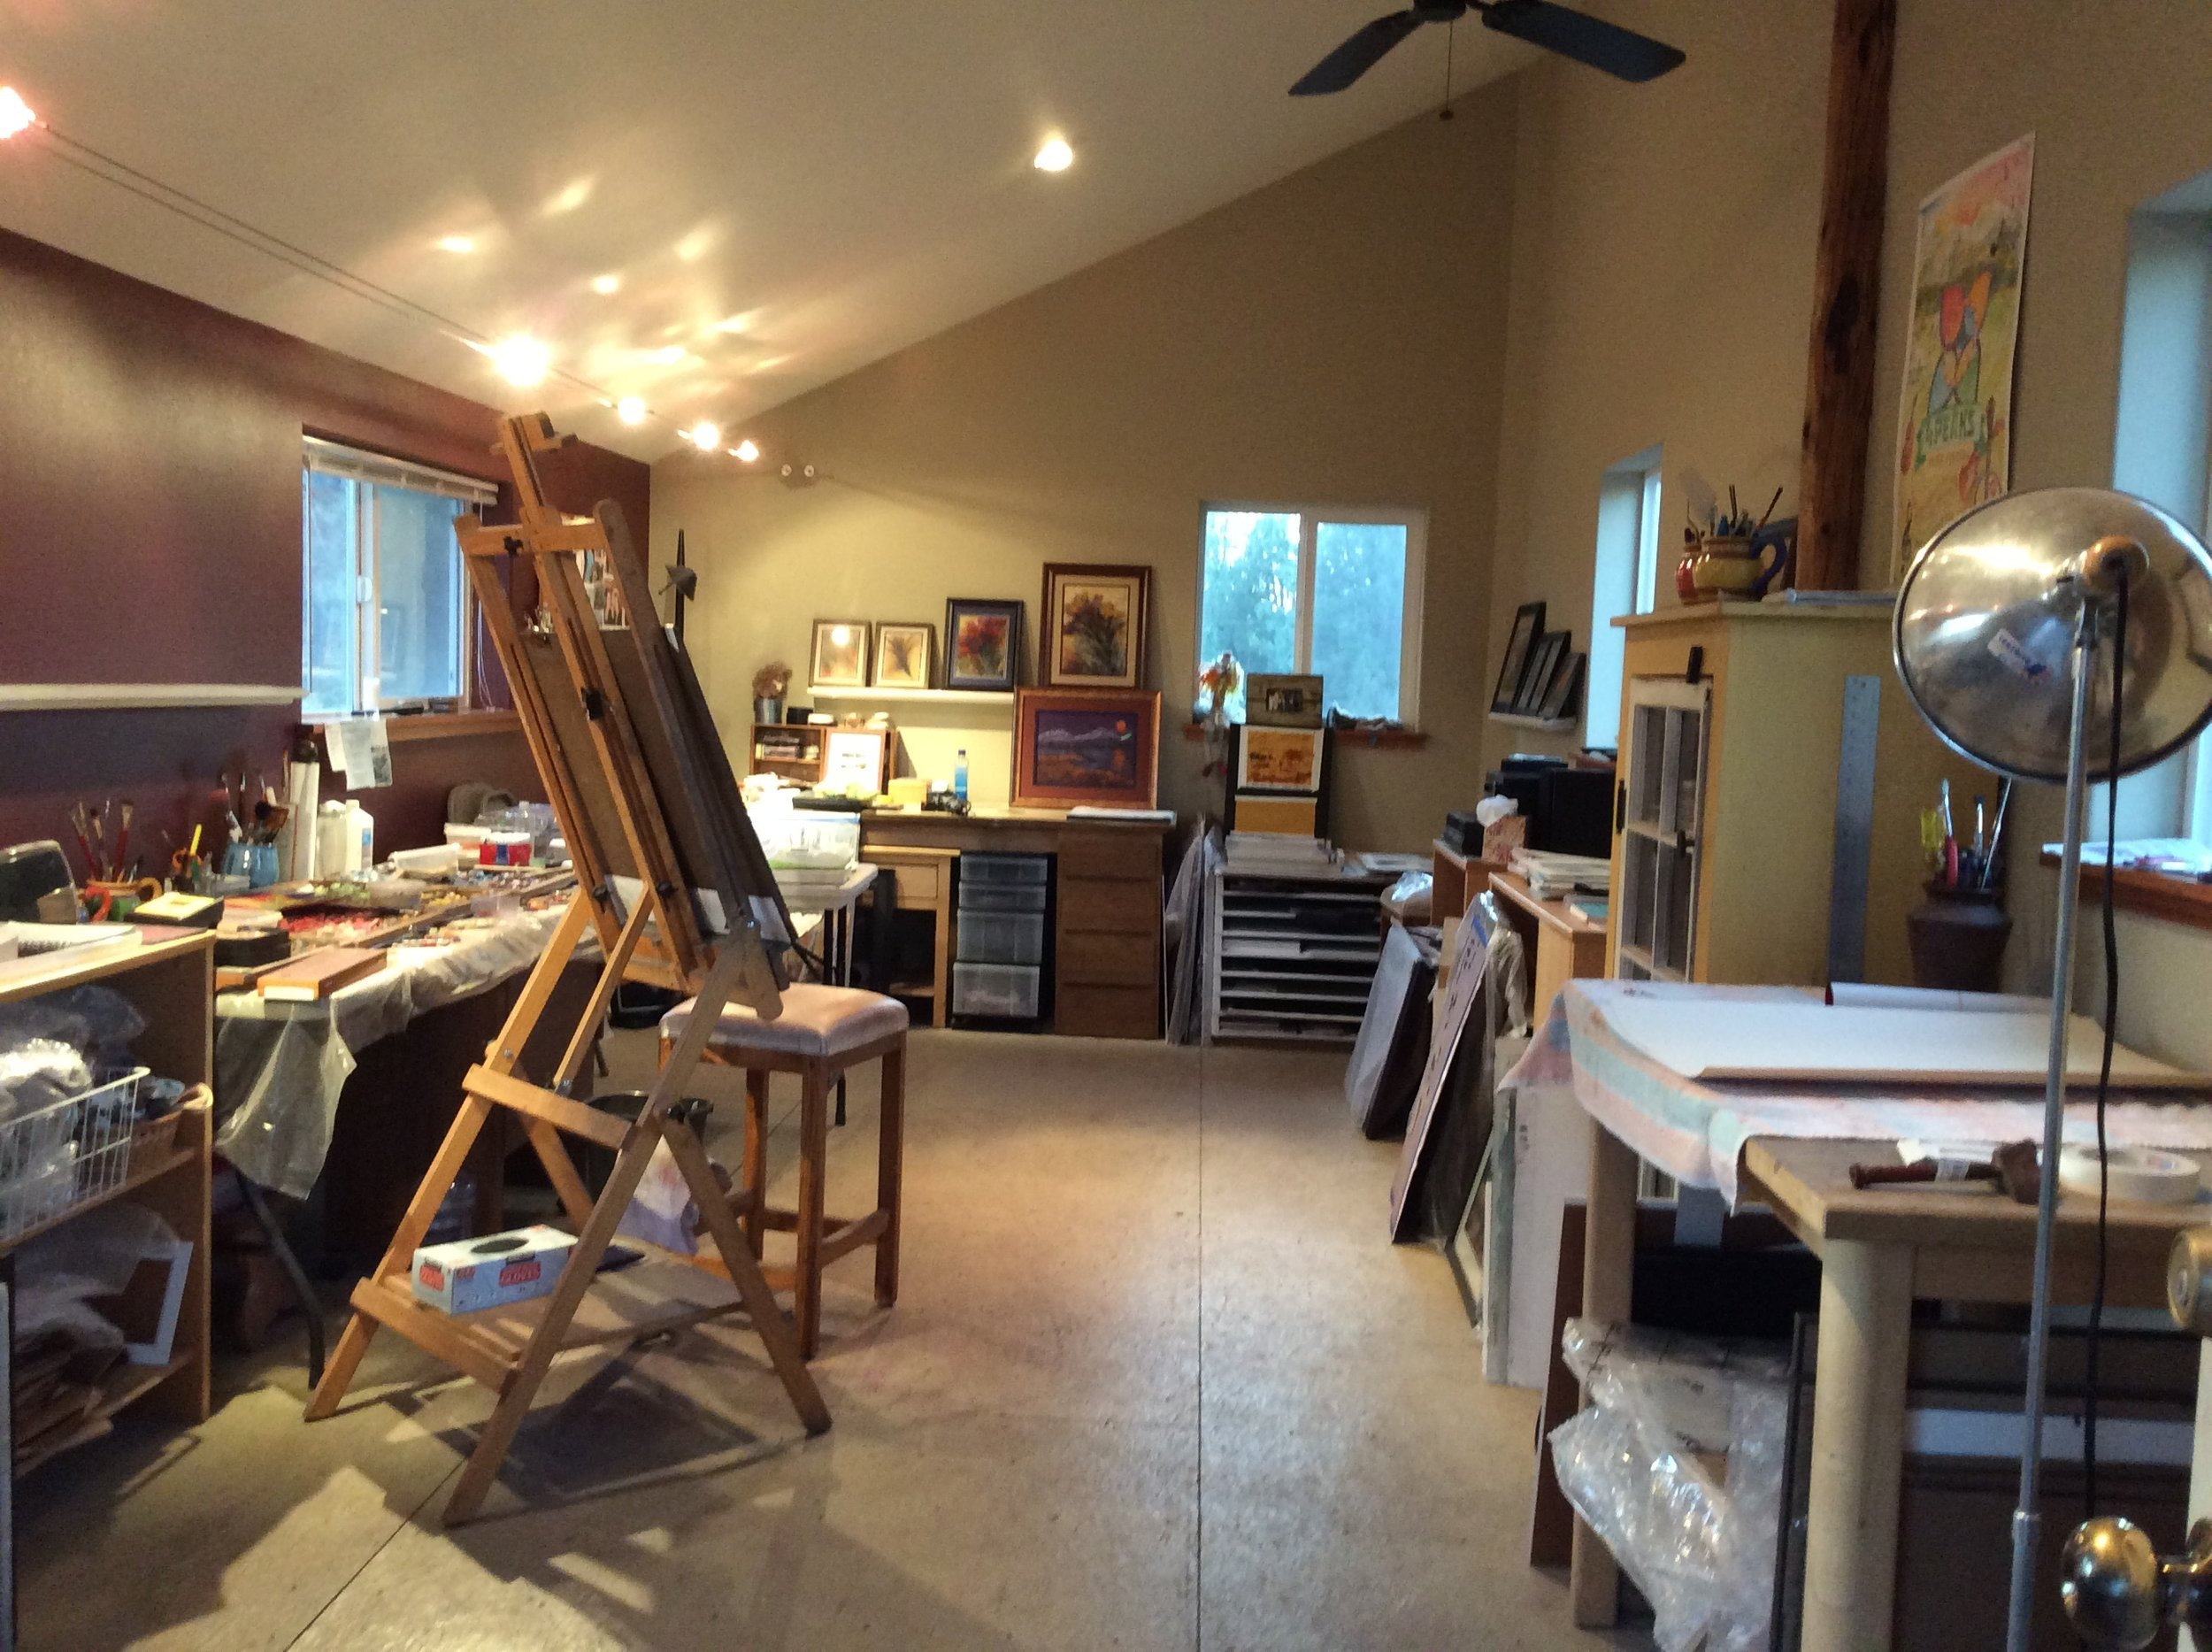 At my easel, in my upper room studio. Come and join me on July 29, 2017